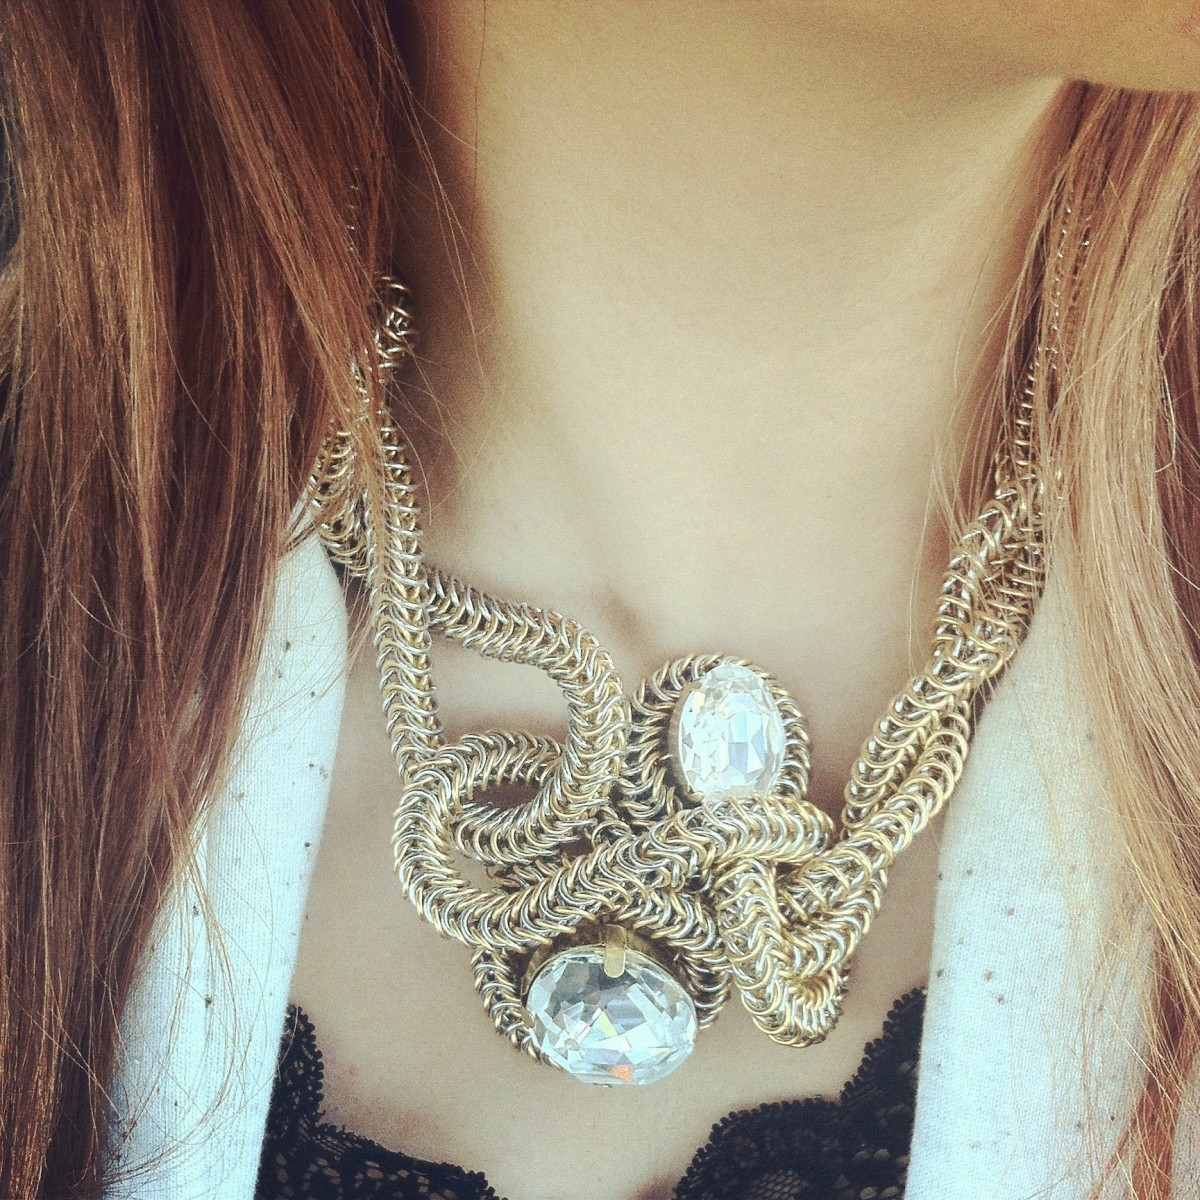 NEW: Anna Statement Necklace, Avant Garde Chain Maille Jewelry